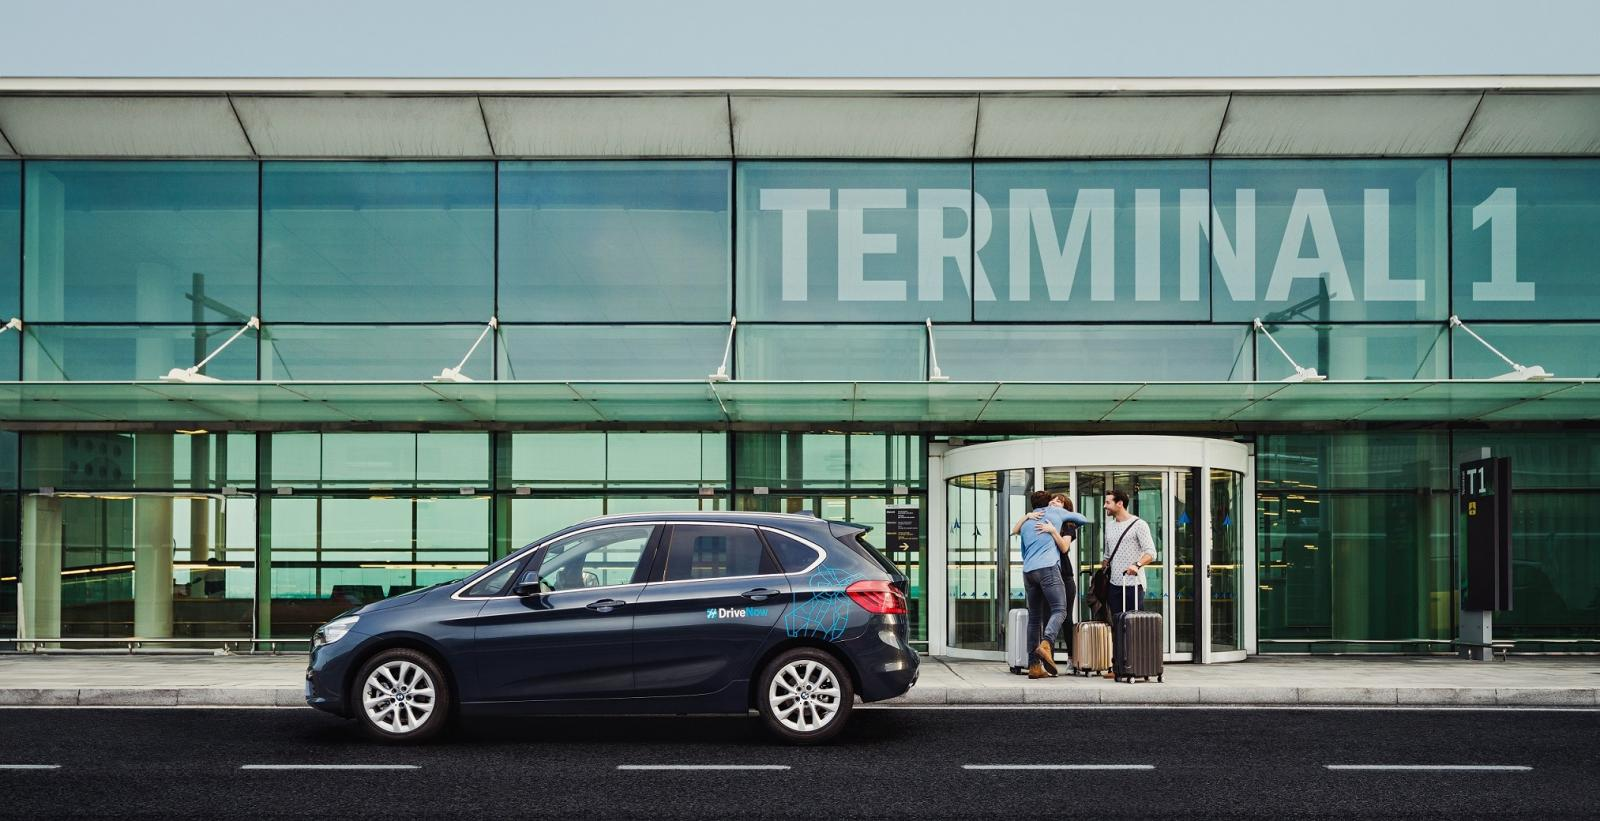 airport-car-rental-drivenow-carsharing